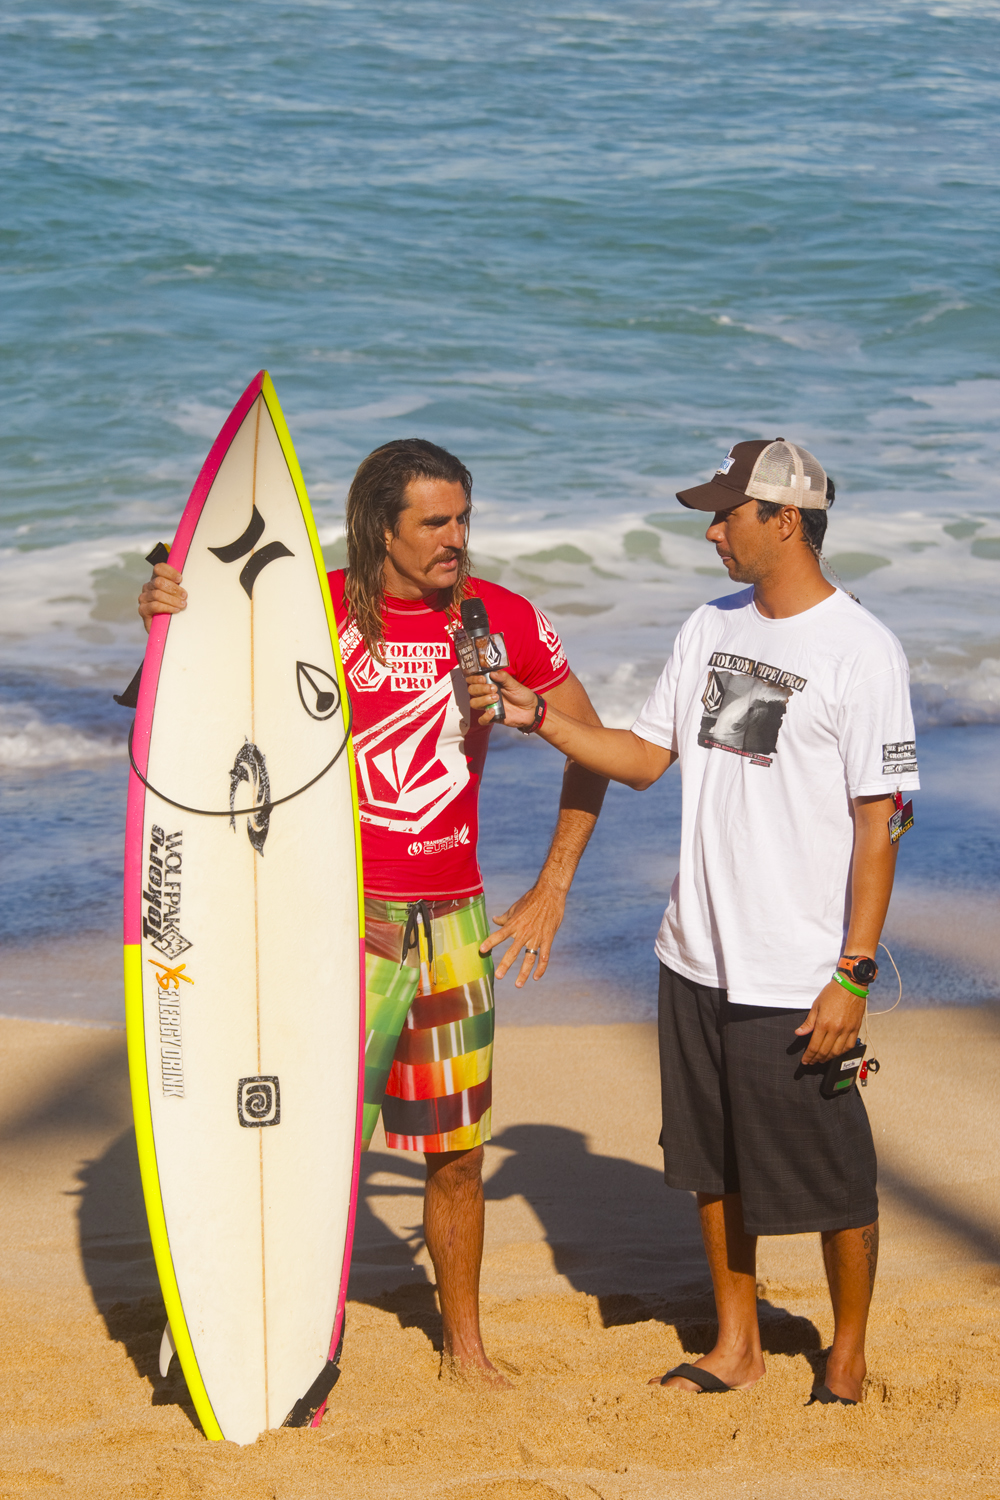 Aamion Goodwin has had a tumultuous relationship with Pipeline over the last few years, though he is looking to be a dominant force in this competition. Photo: Noyle/SPL